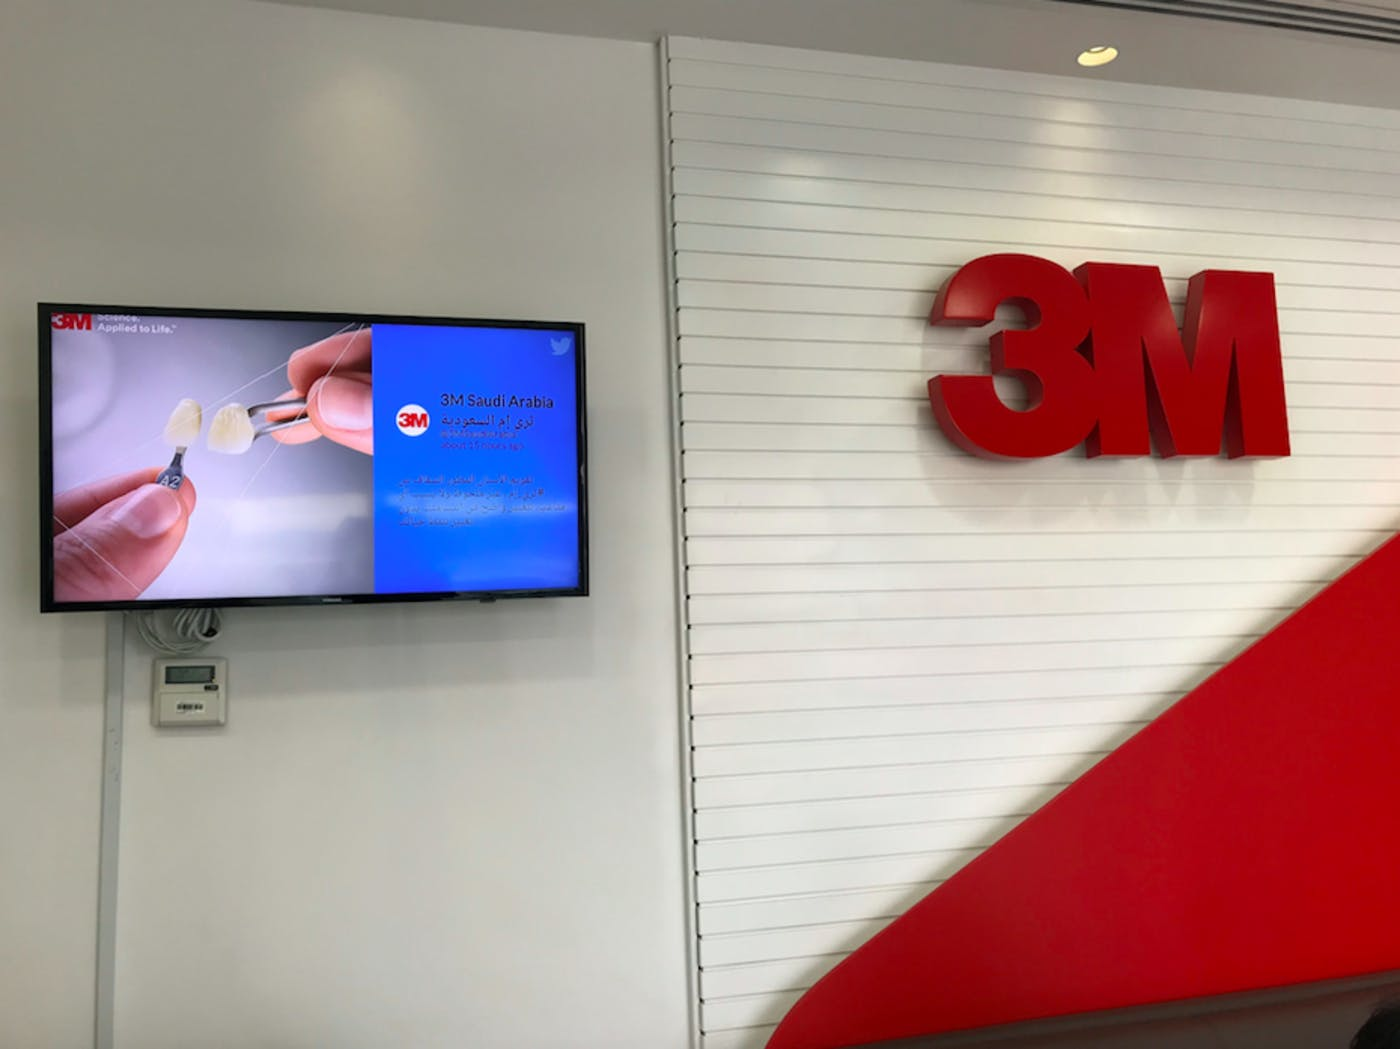 Science Tech Conglomerate 3M Uses Digital Signage to Beam Important Internal Information Across Global Locations